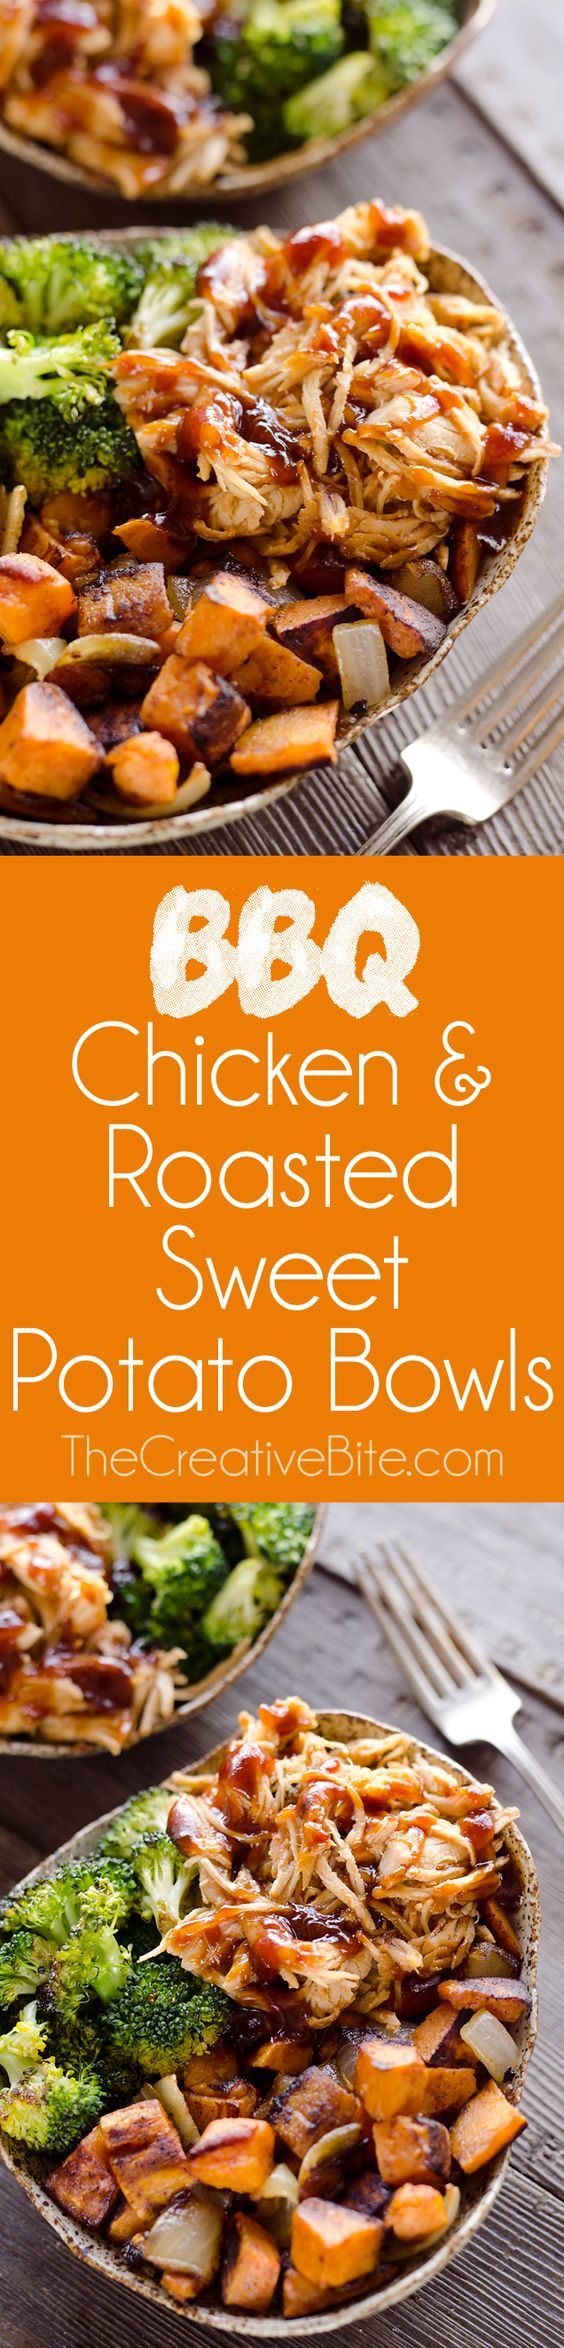 BBQ Chicken & Roasted Sweet Potato Bowls are a hearty and healthy dinner idea bursting with bold flavors and nutritious vegetables.